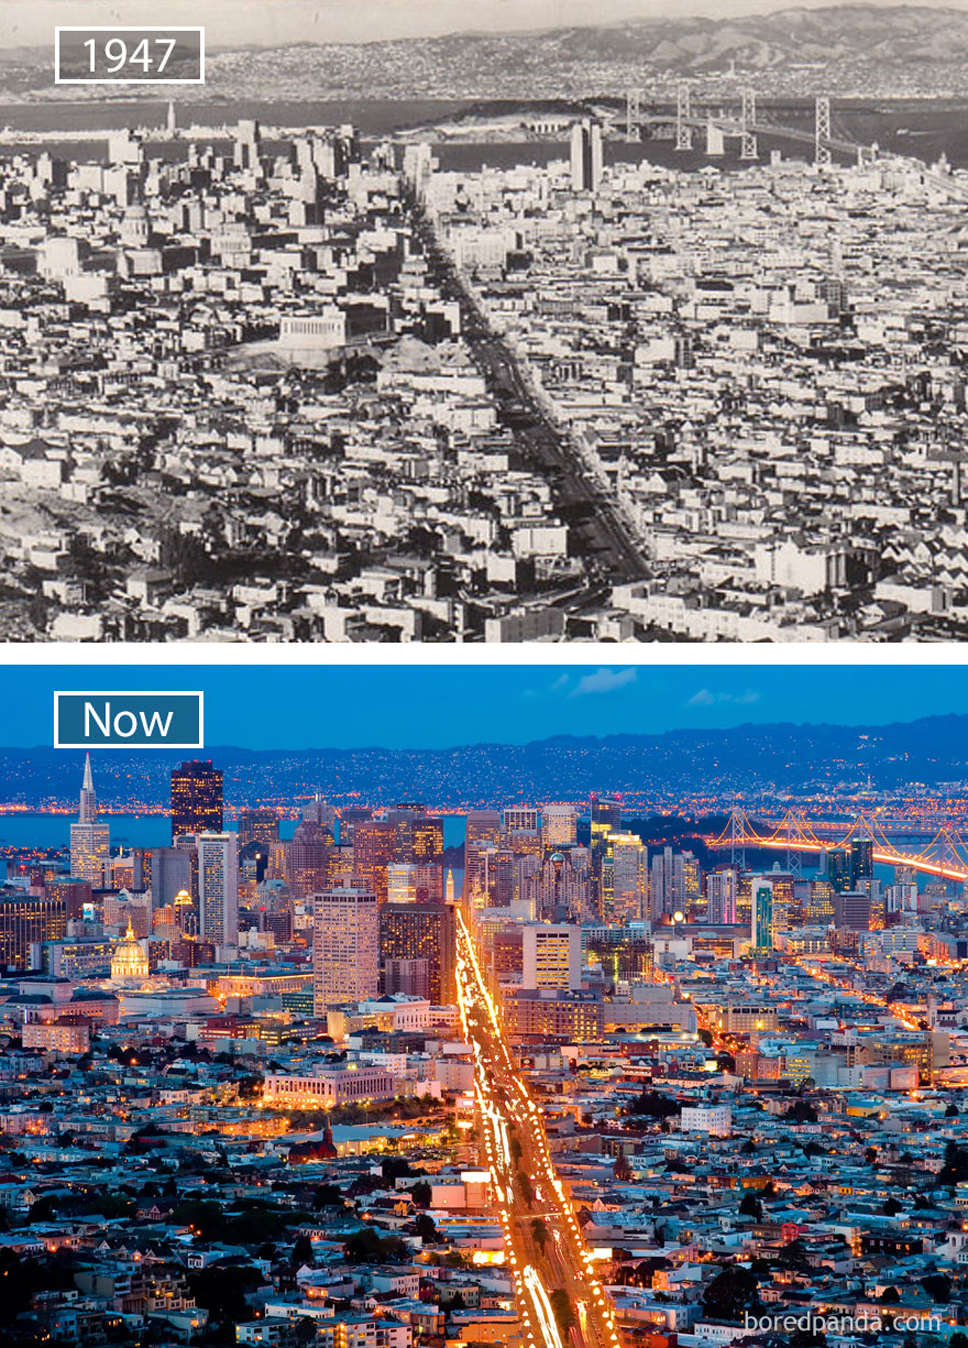 how-famous-city-changed-timelapse-evolution-before-after-28-577e0344ab448__880